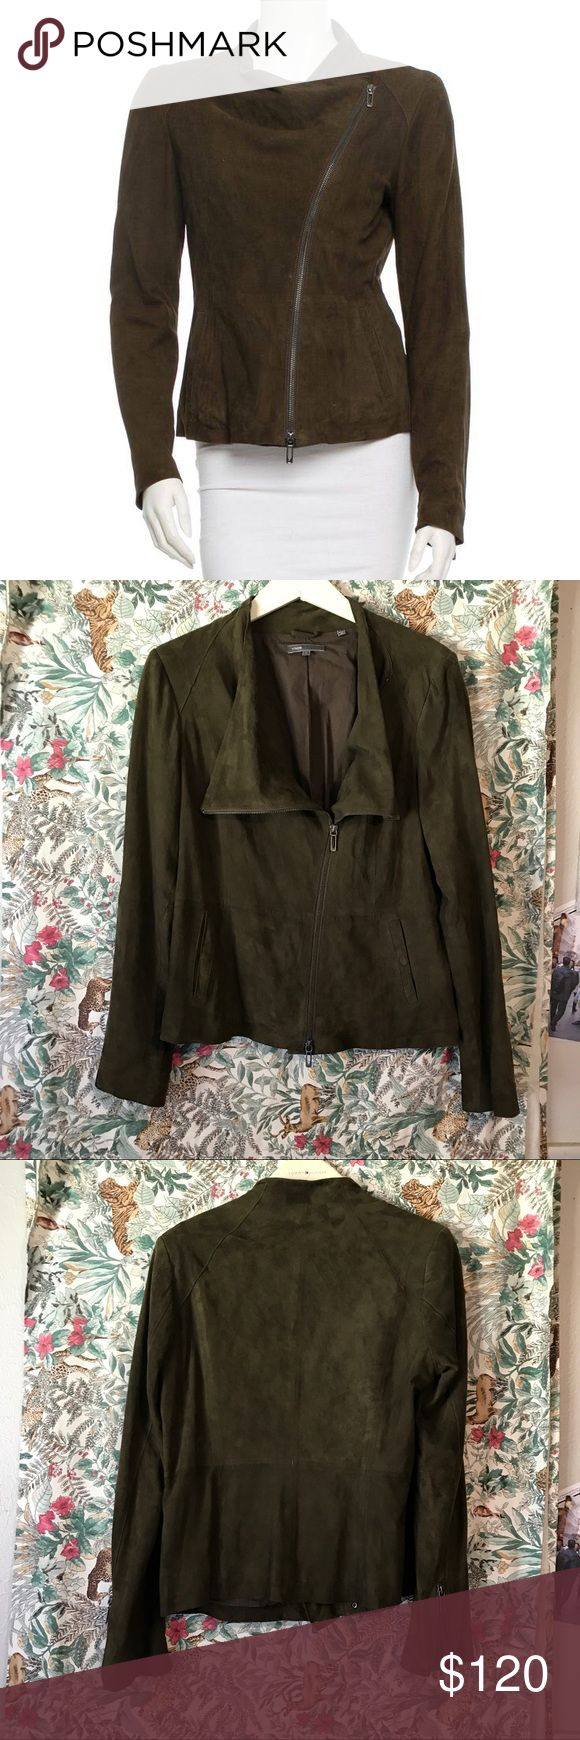 Vince Suede Olive Green Leather Jacket Vince Suede Olive Green Leather Jacket. Size Large. The only flaw, is a rip on the inside lining that doesn't affect, or show on the outside at all! Picture listed. Vince Jackets & Coats